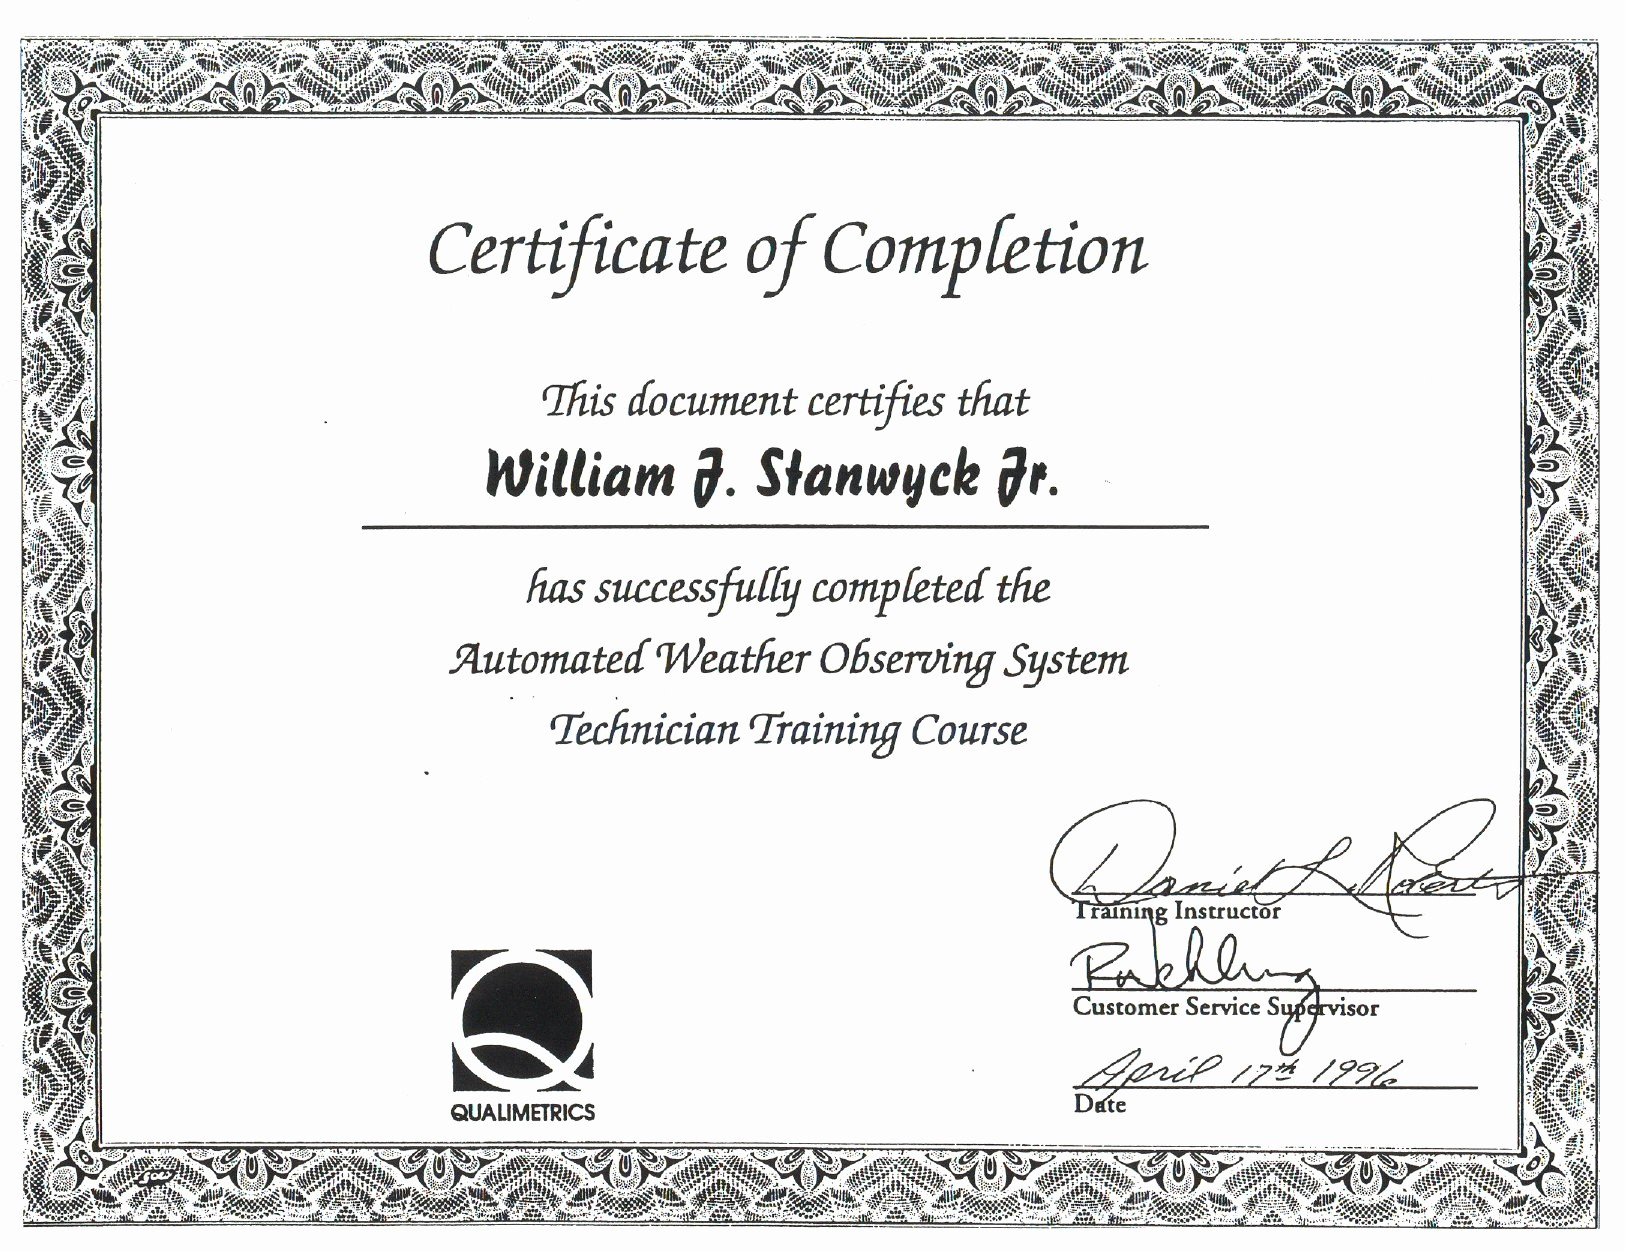 Blank Certificate Of Completion Template Awesome 13 Certificate Of Pletion Templates Excel Pdf formats